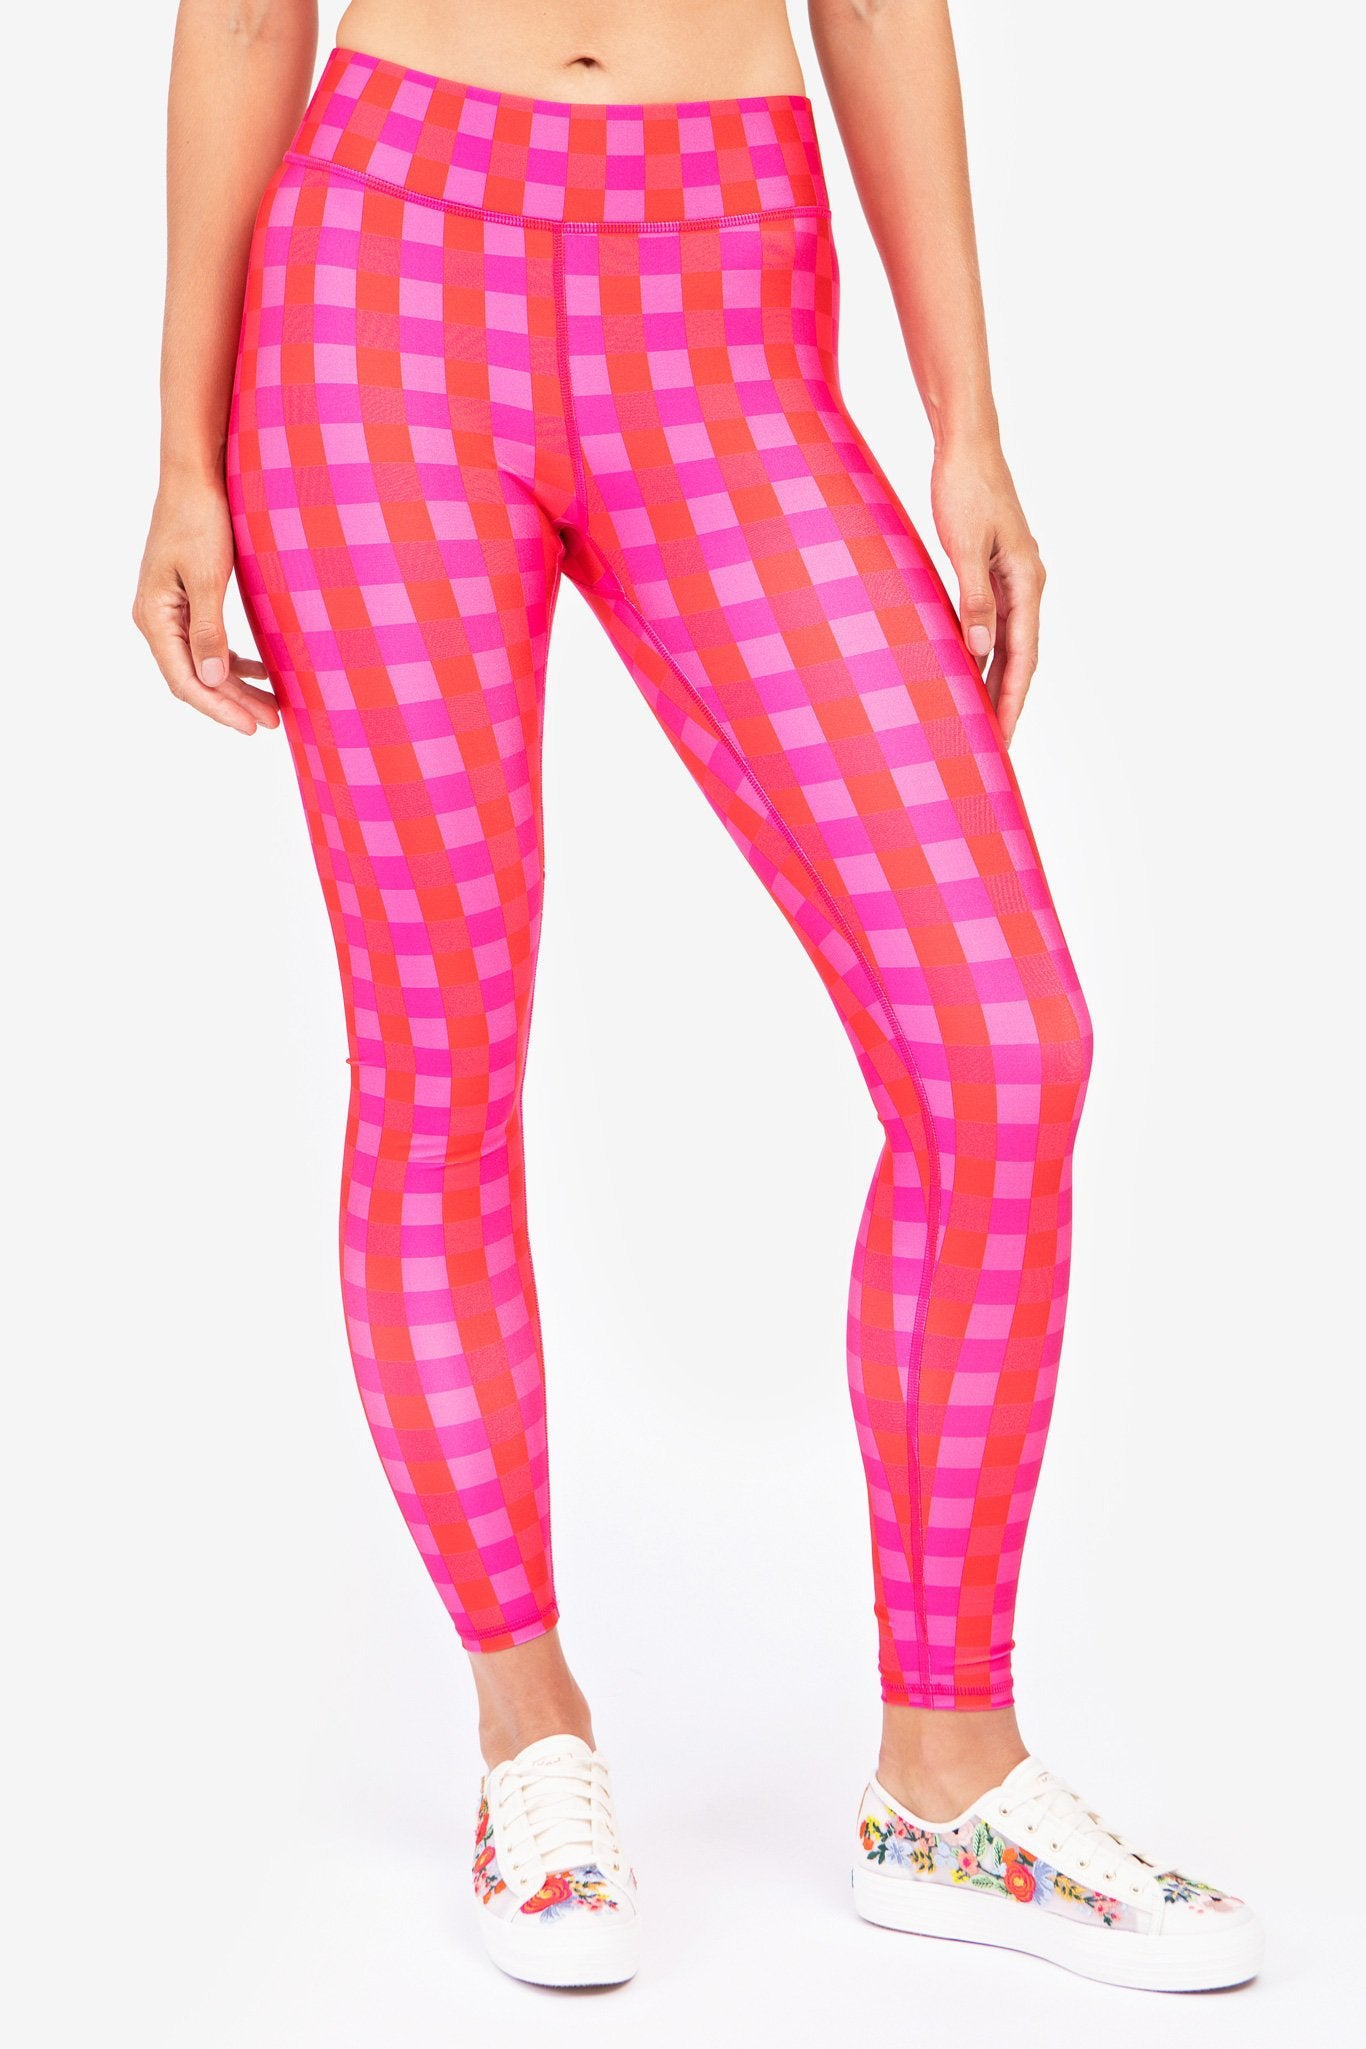 Picnic Hi-Shine Leggings